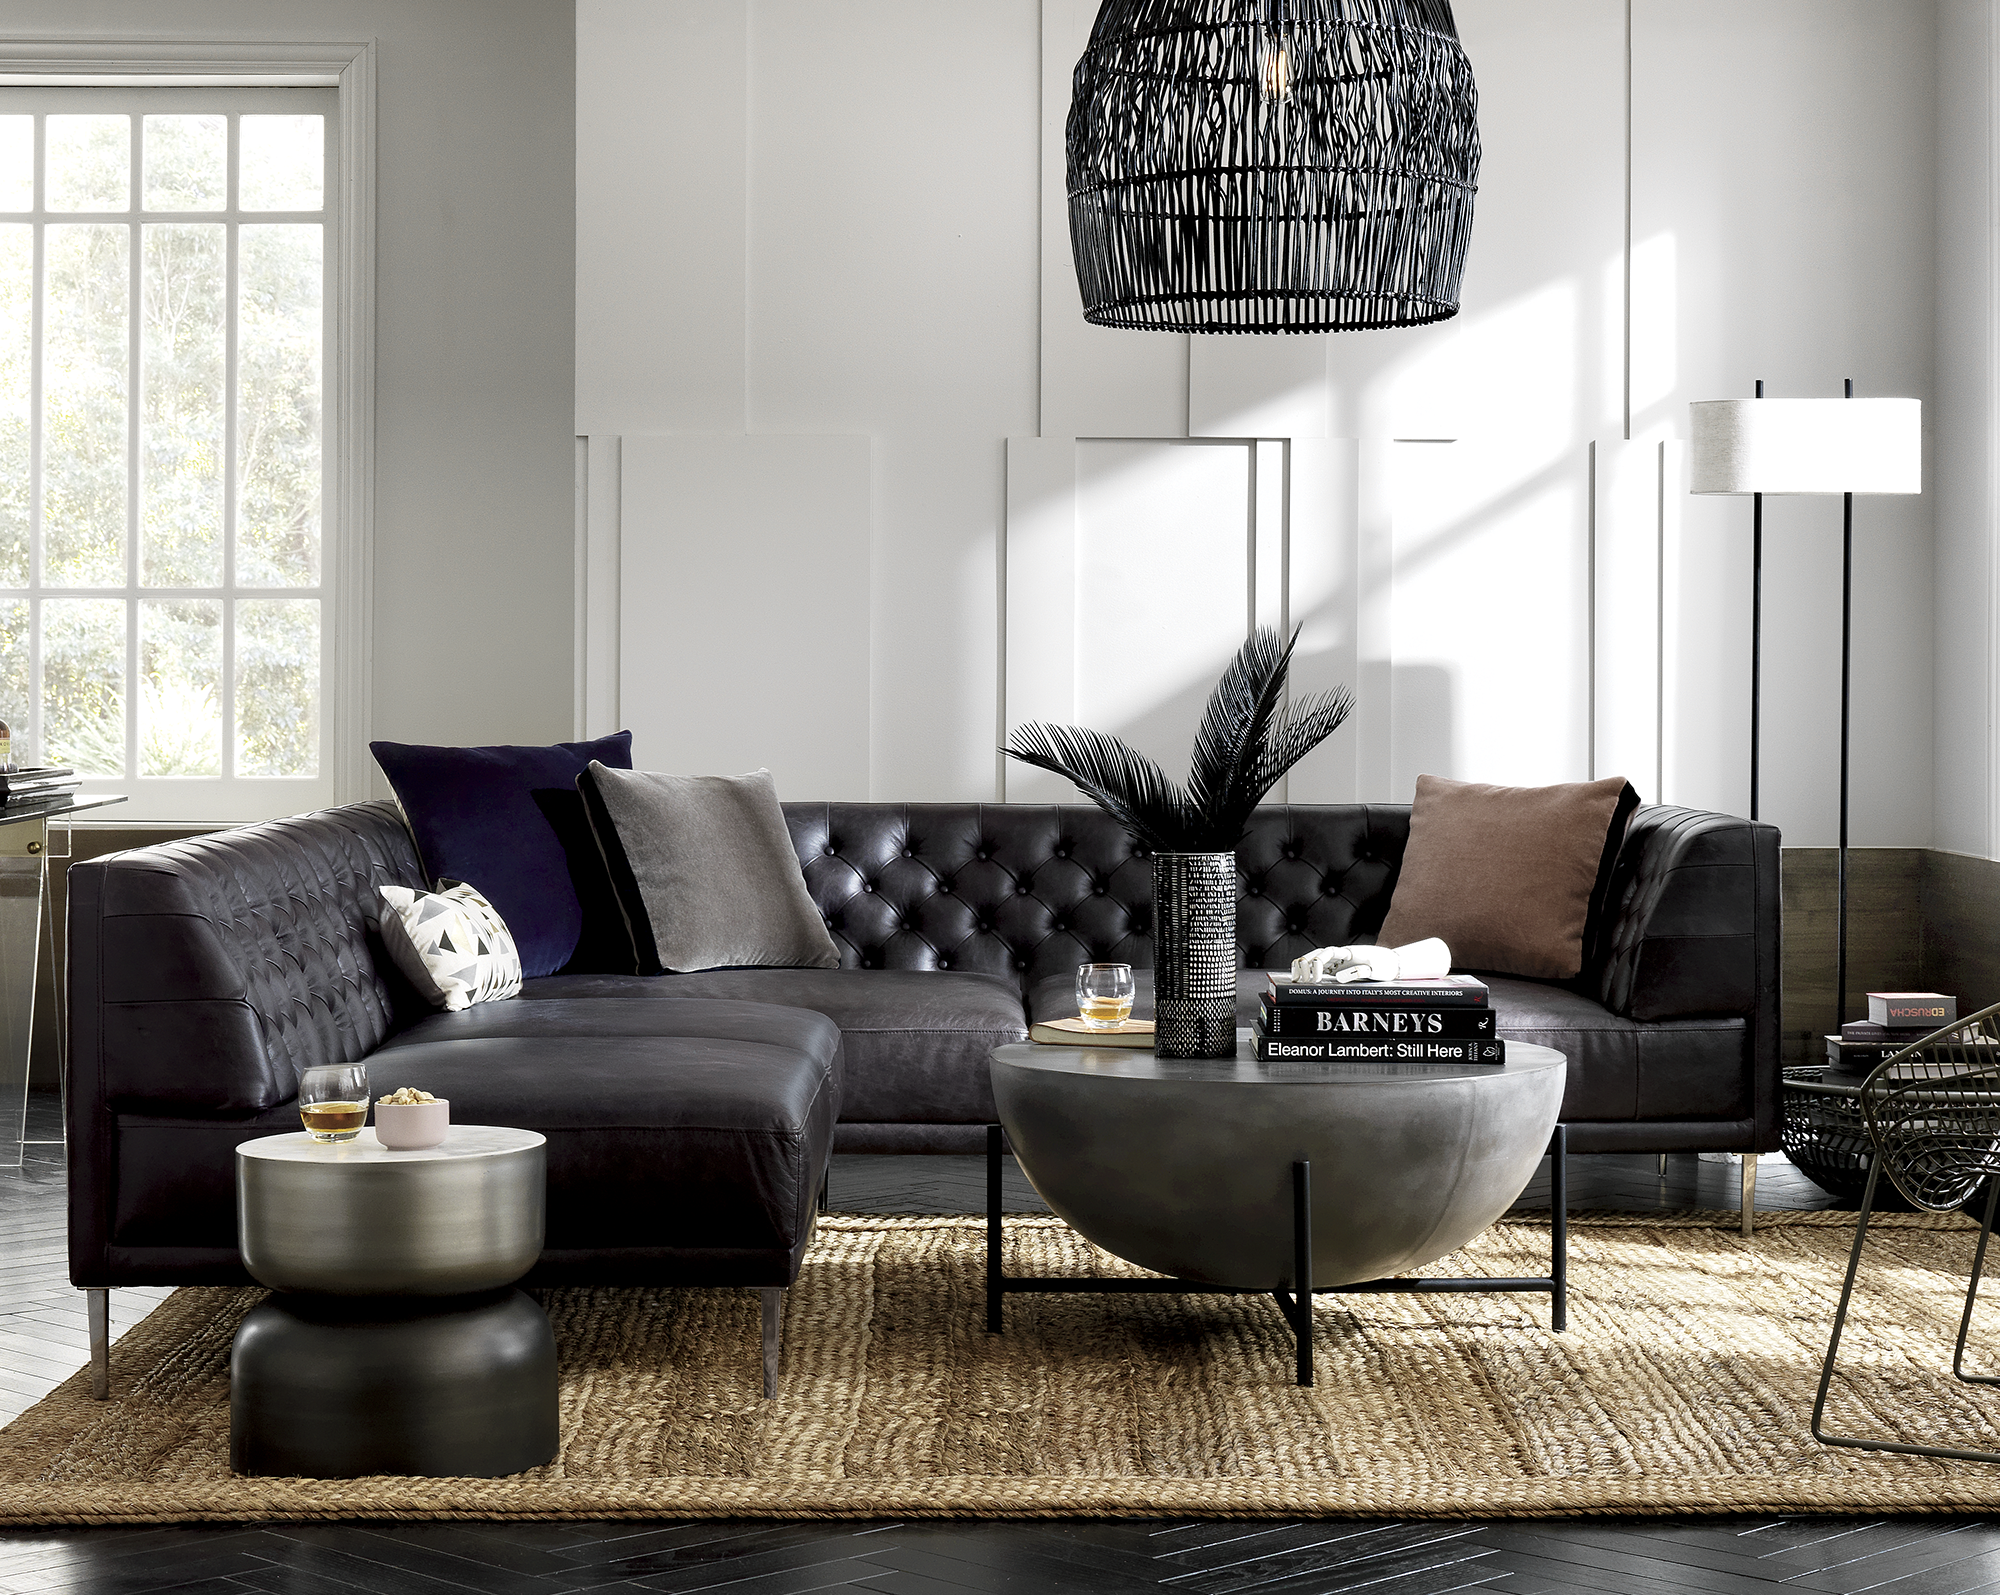 Miraculous Couch Coffee Table Png Black And White Free Couch Coffee Inzonedesignstudio Interior Chair Design Inzonedesignstudiocom